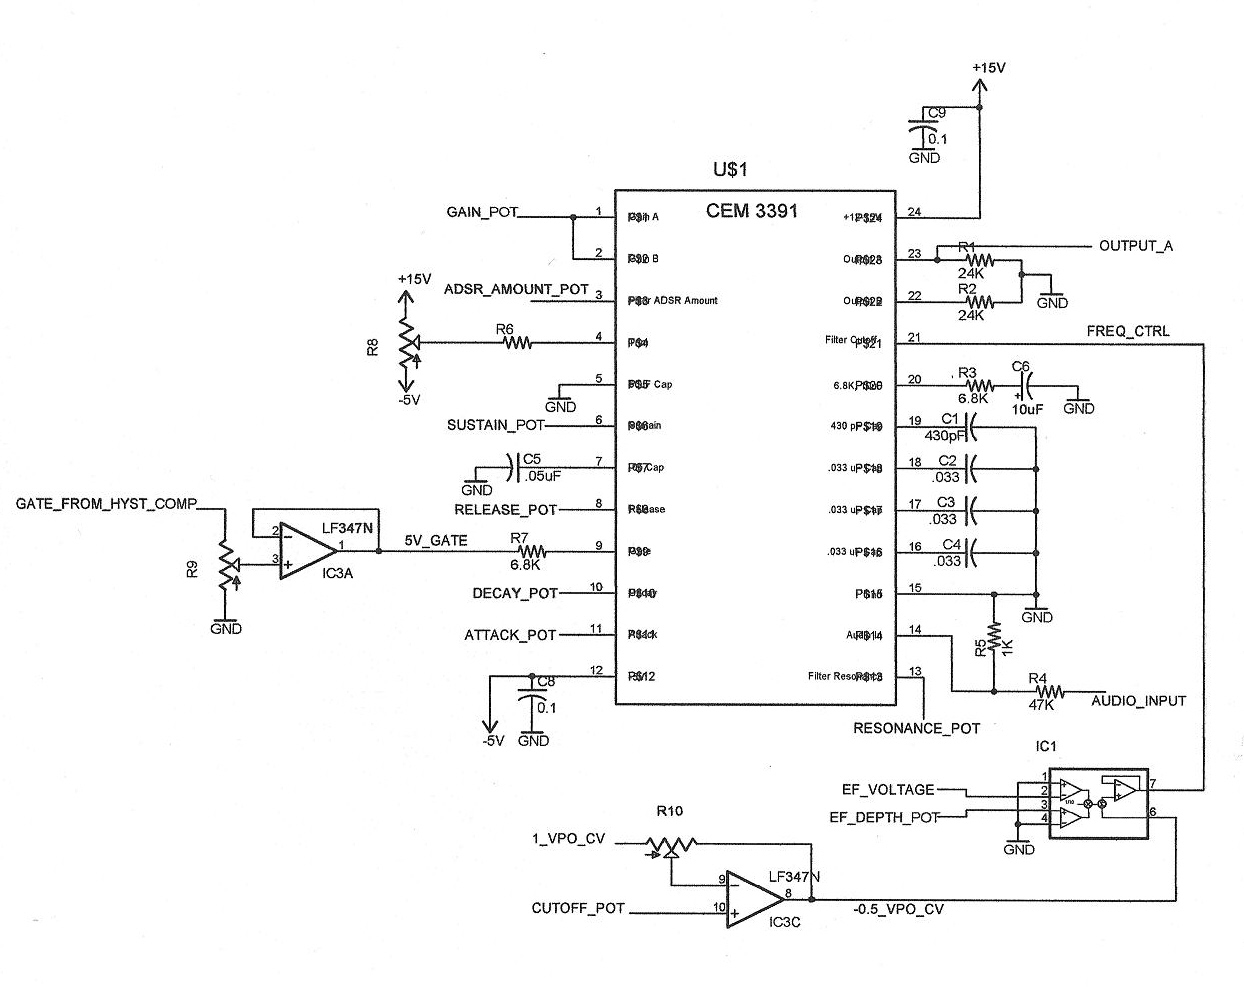 An Analog Guitar Synthesizer Based Around The Roland GR-300 - schematic